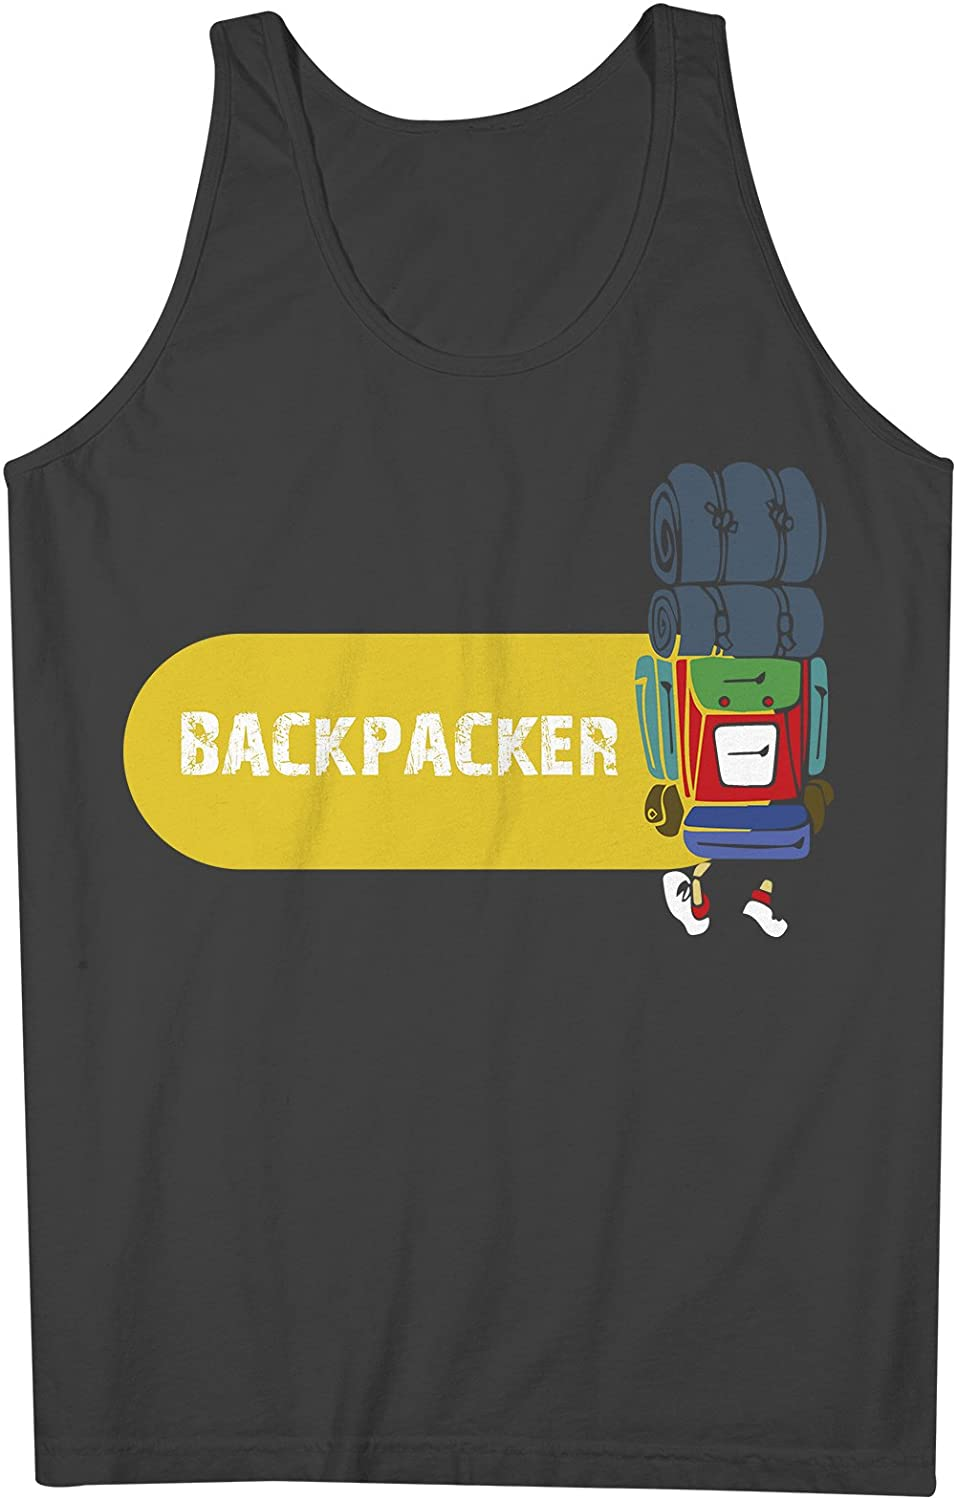 Backpacker Traveling Travel 男性用 Tank Top Sleeveless Shirt